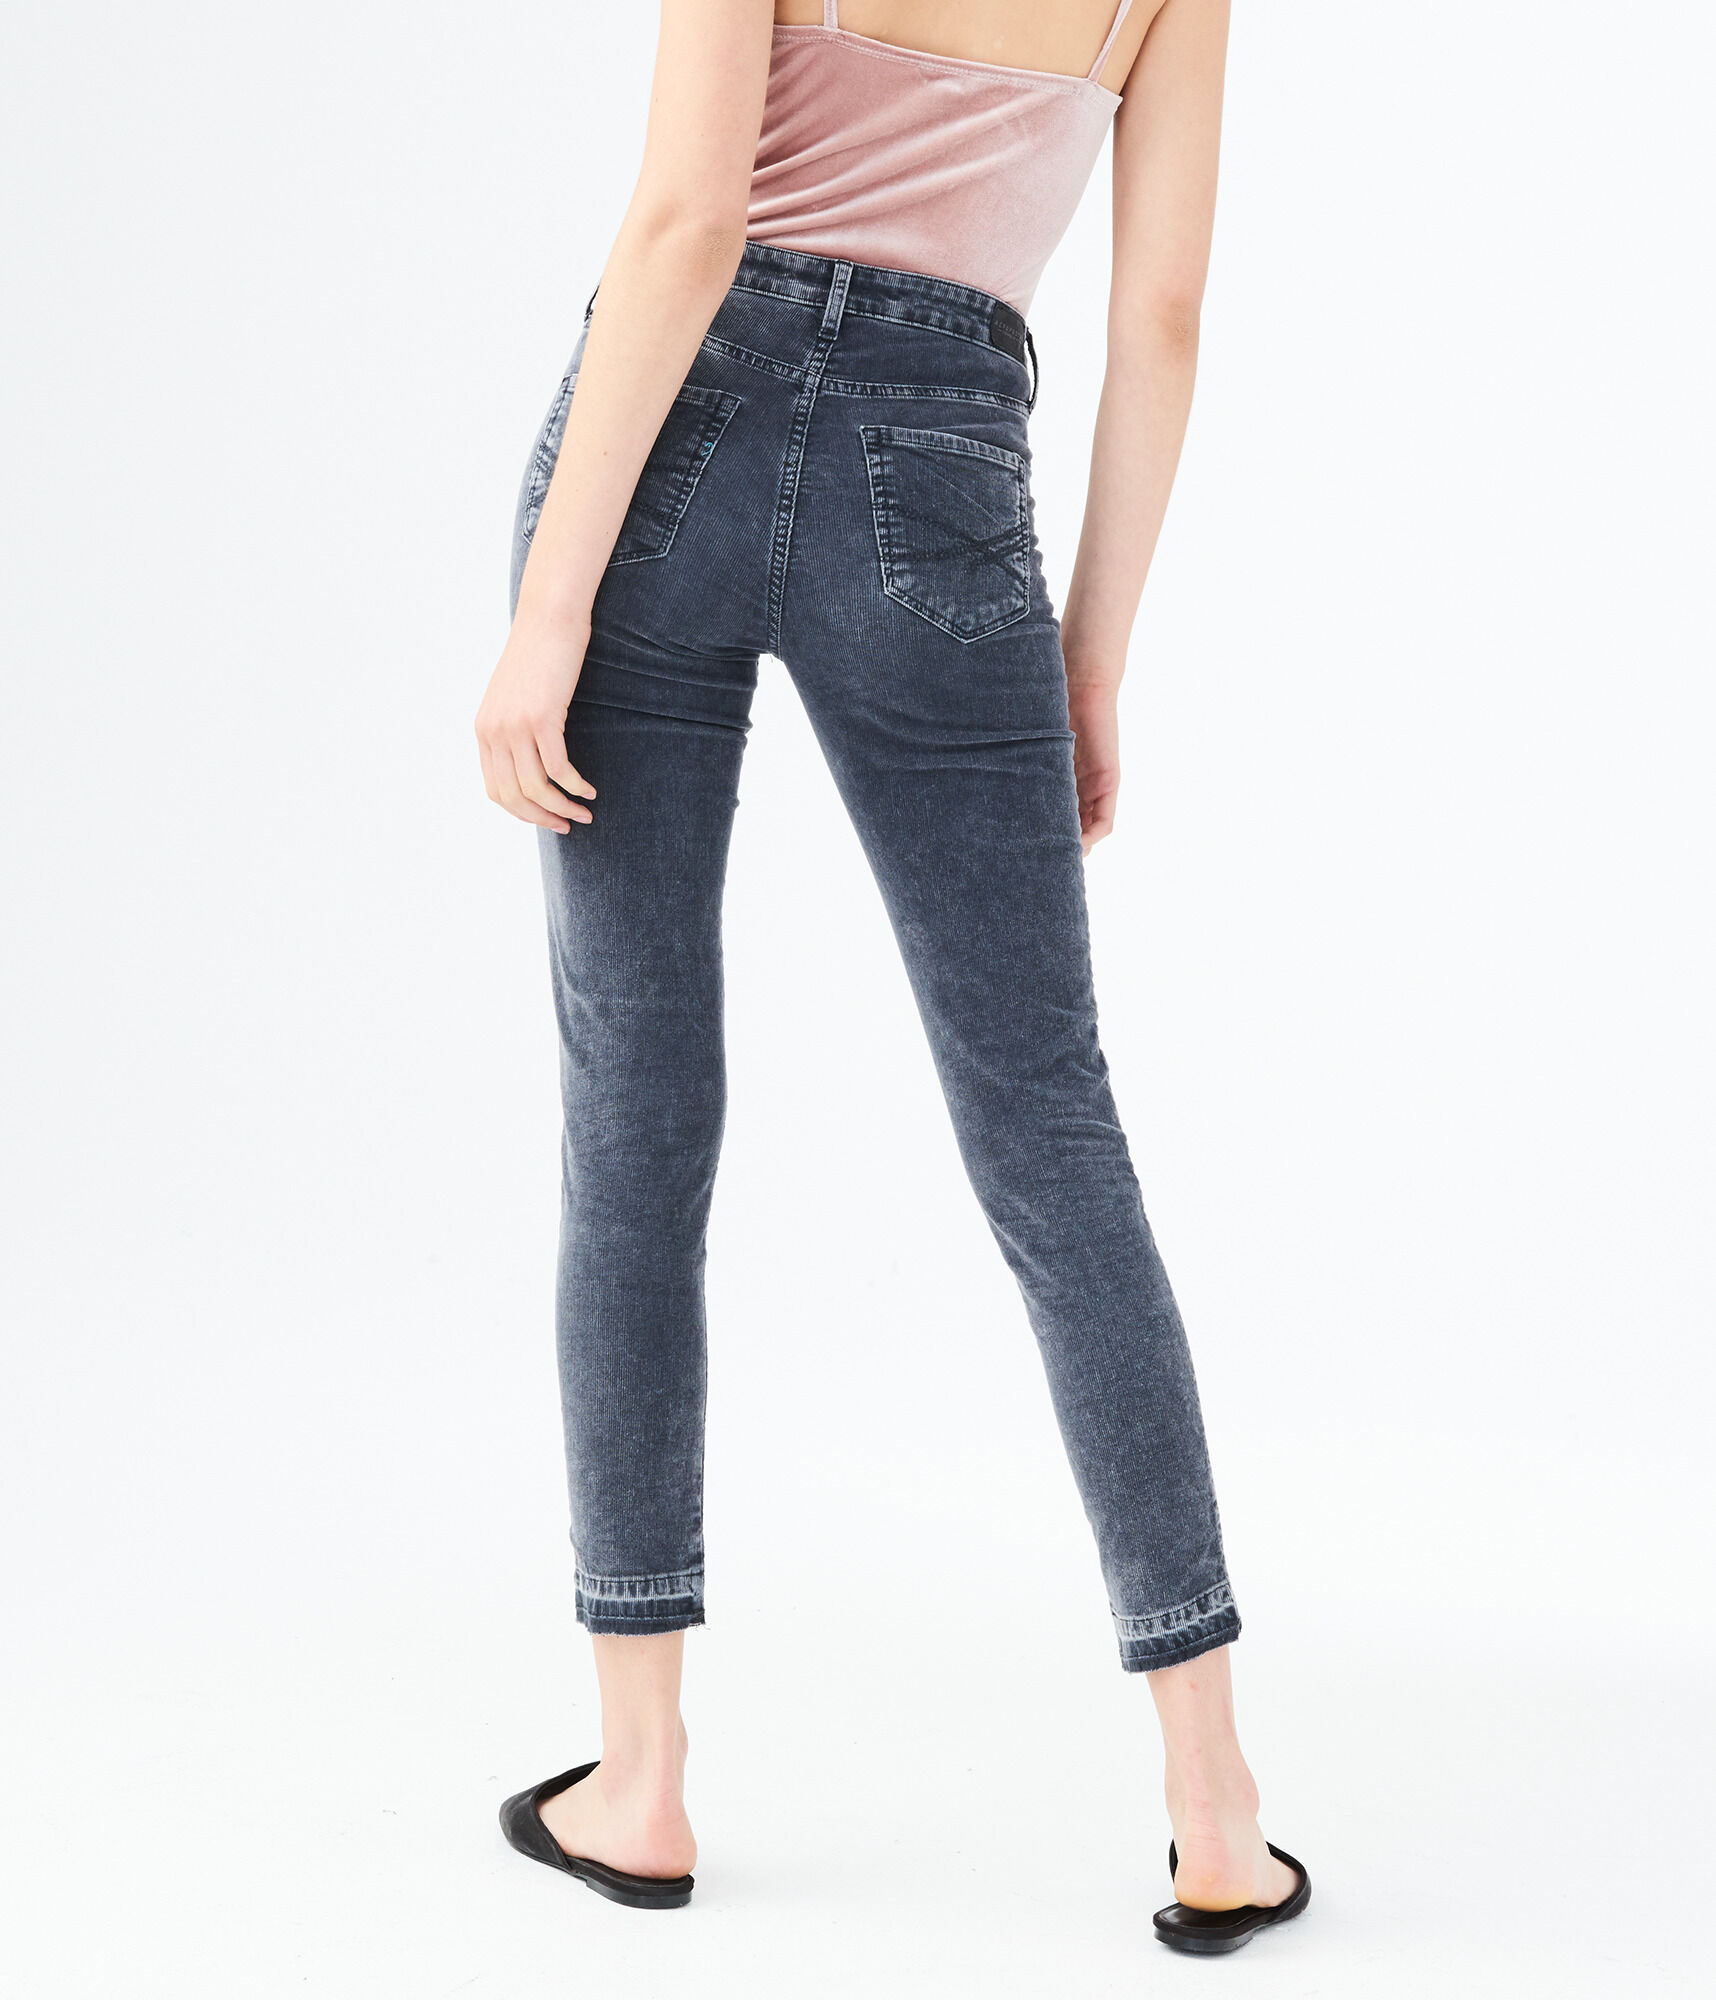 bde12bfcde80d5 High-Waisted Corduroy Ankle Jegging